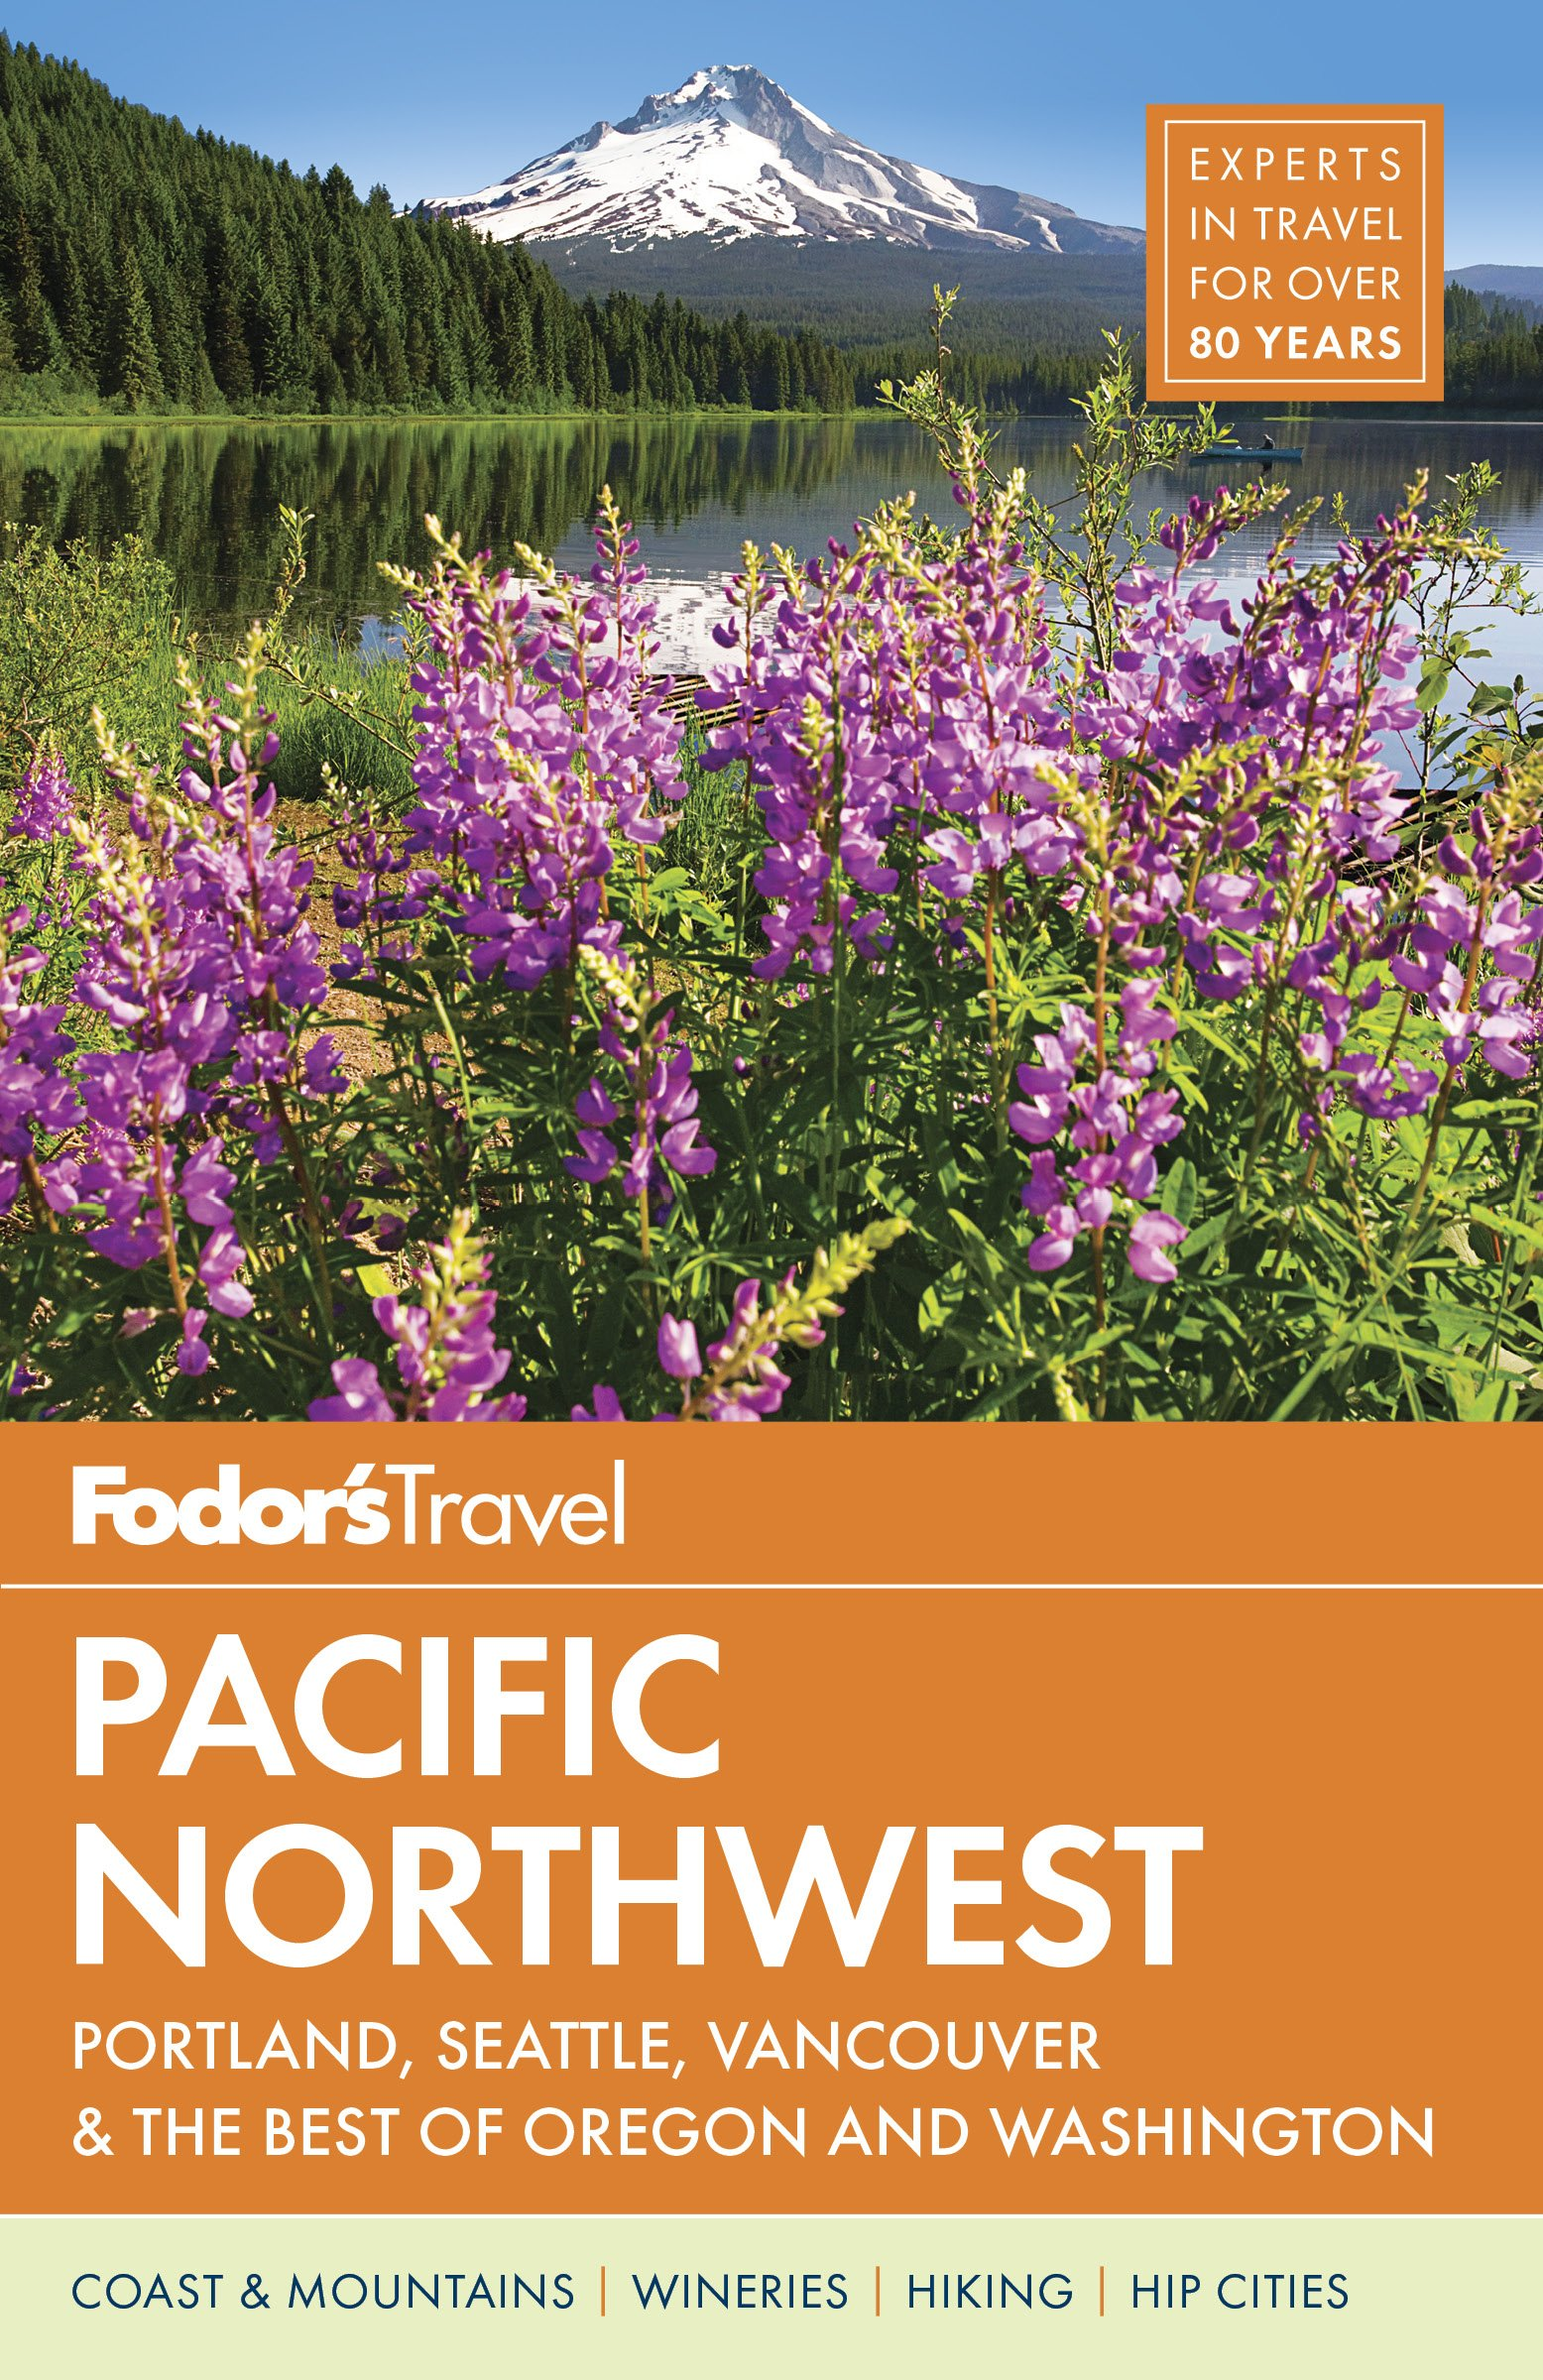 Fodor's Pacific Northwest: Portland, Seattle, Vancouver & the Best of Oregon and Washington (Full-color Travel Guide)